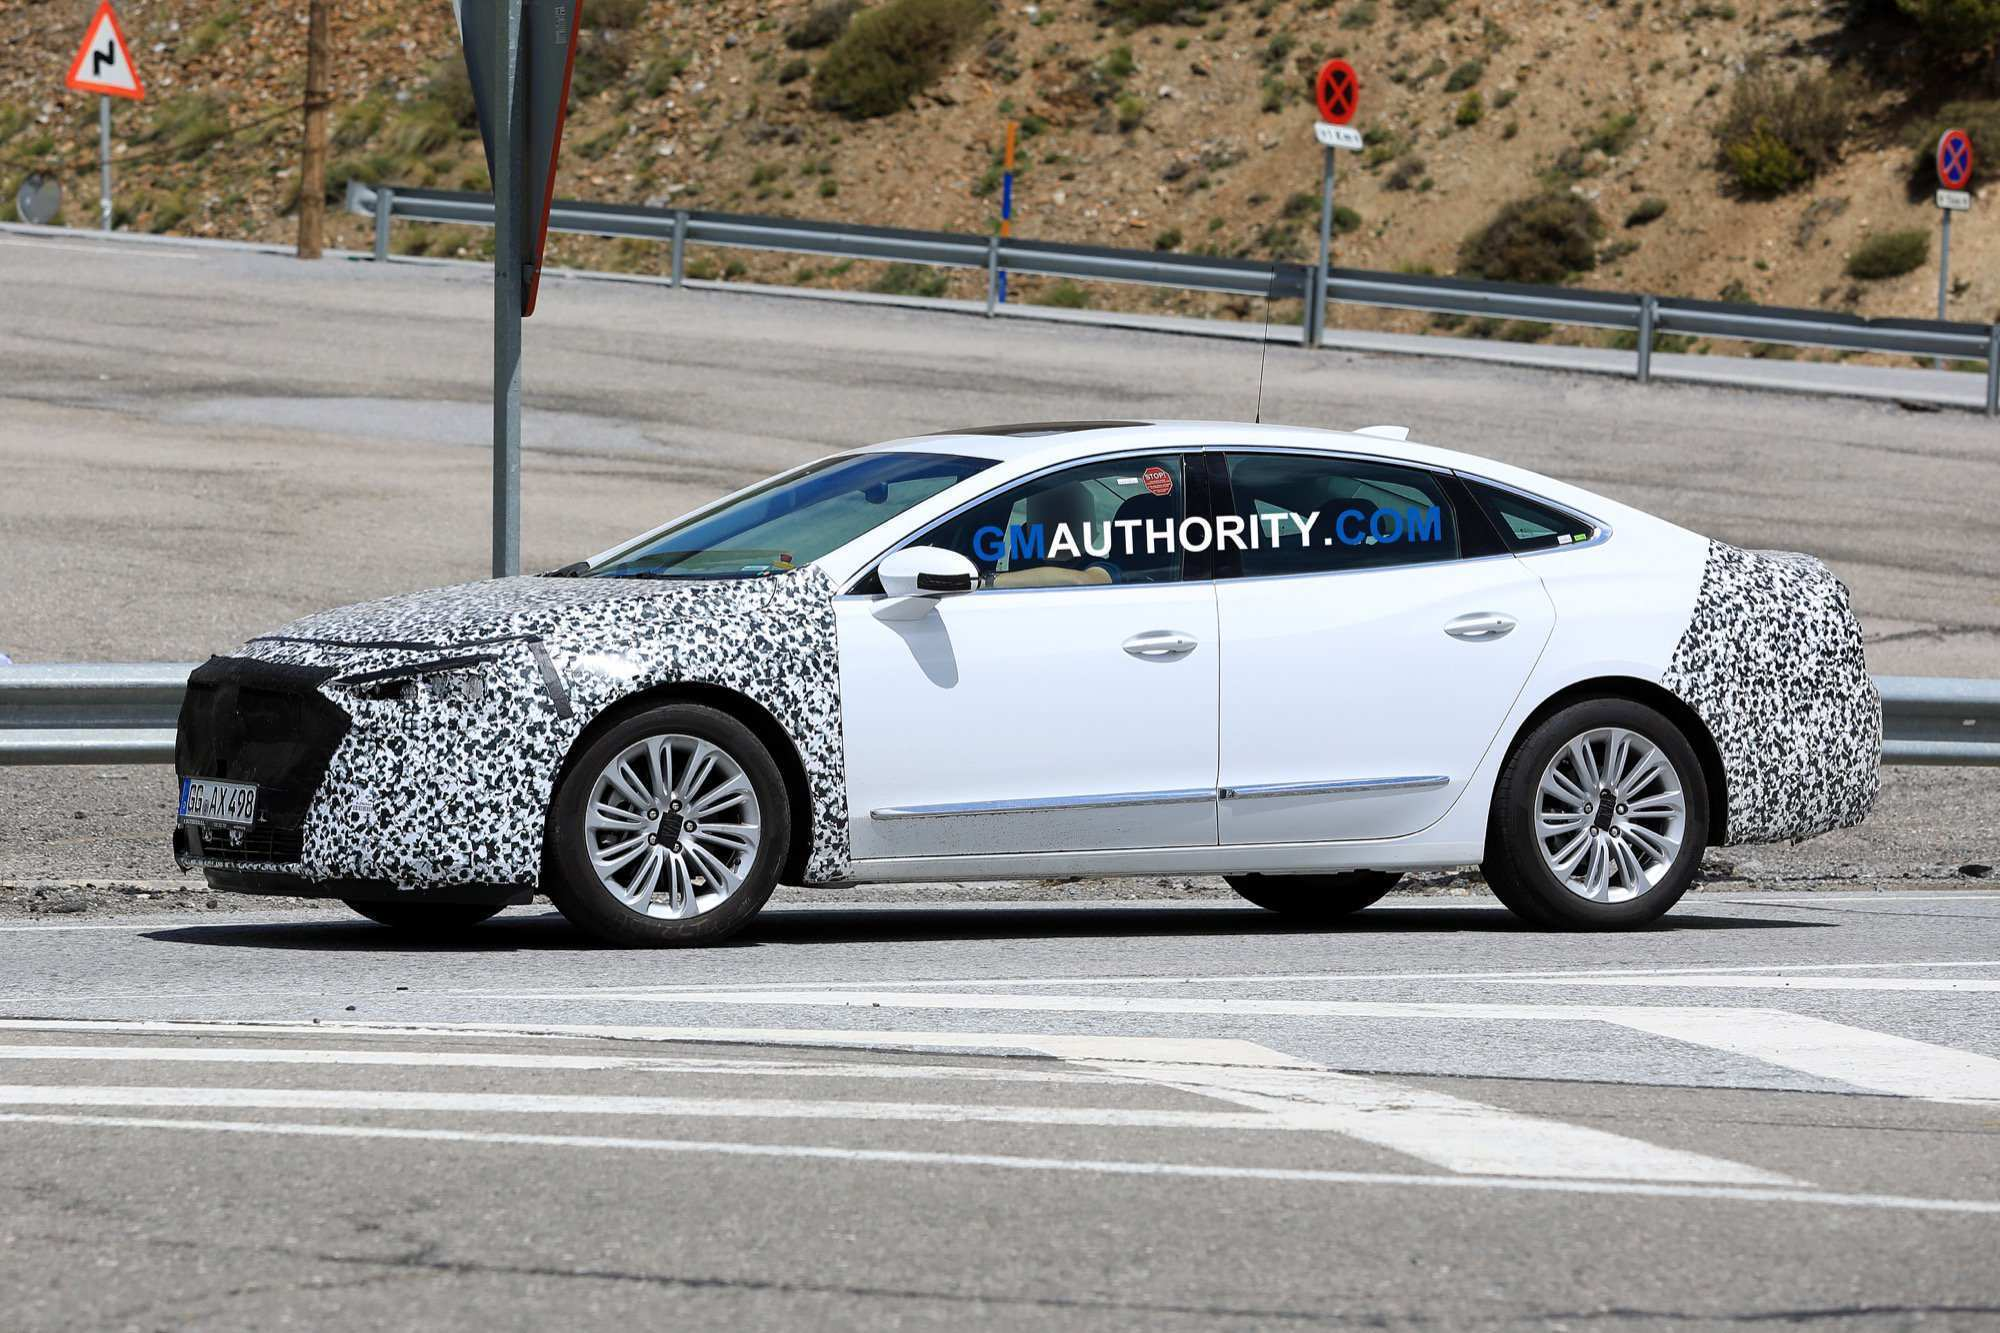 56 All New 2020 Buick LaCrosses Release for 2020 Buick LaCrosses